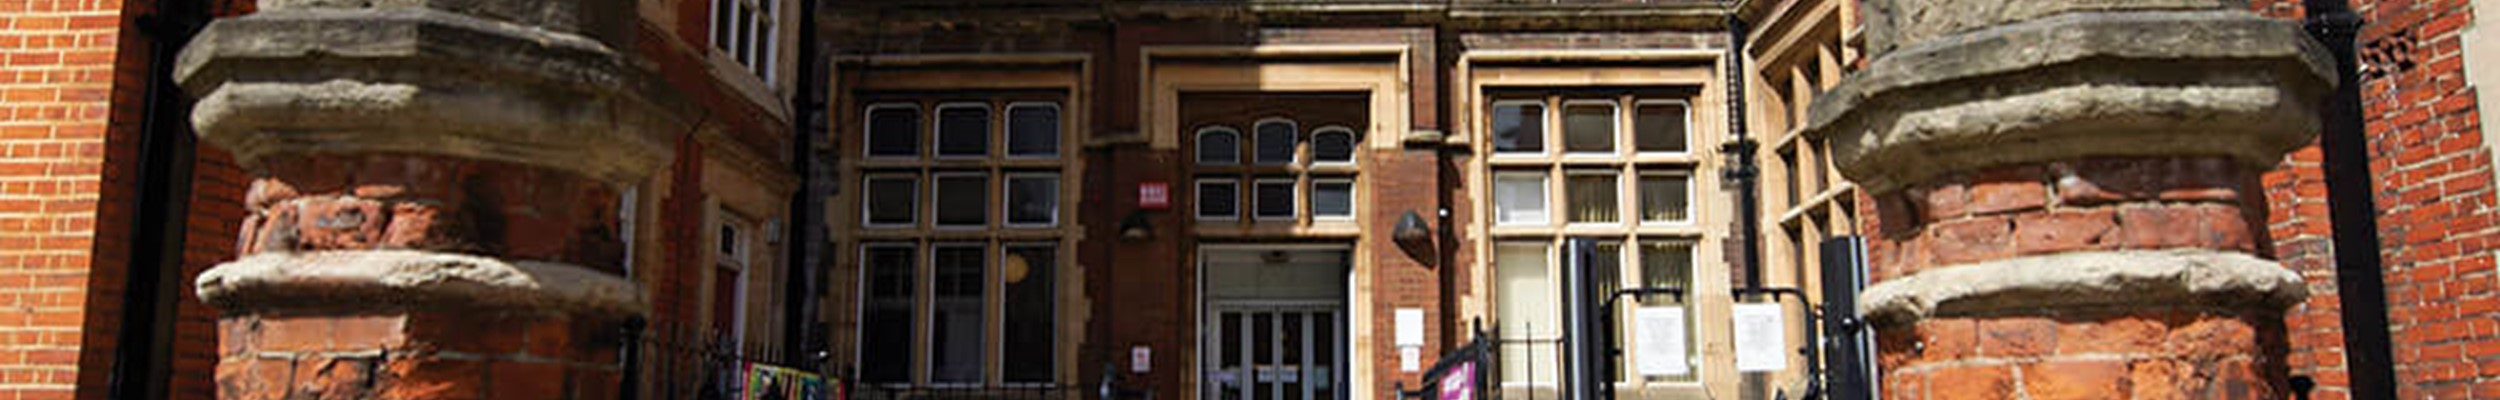 Maidstone Adult Education Centre